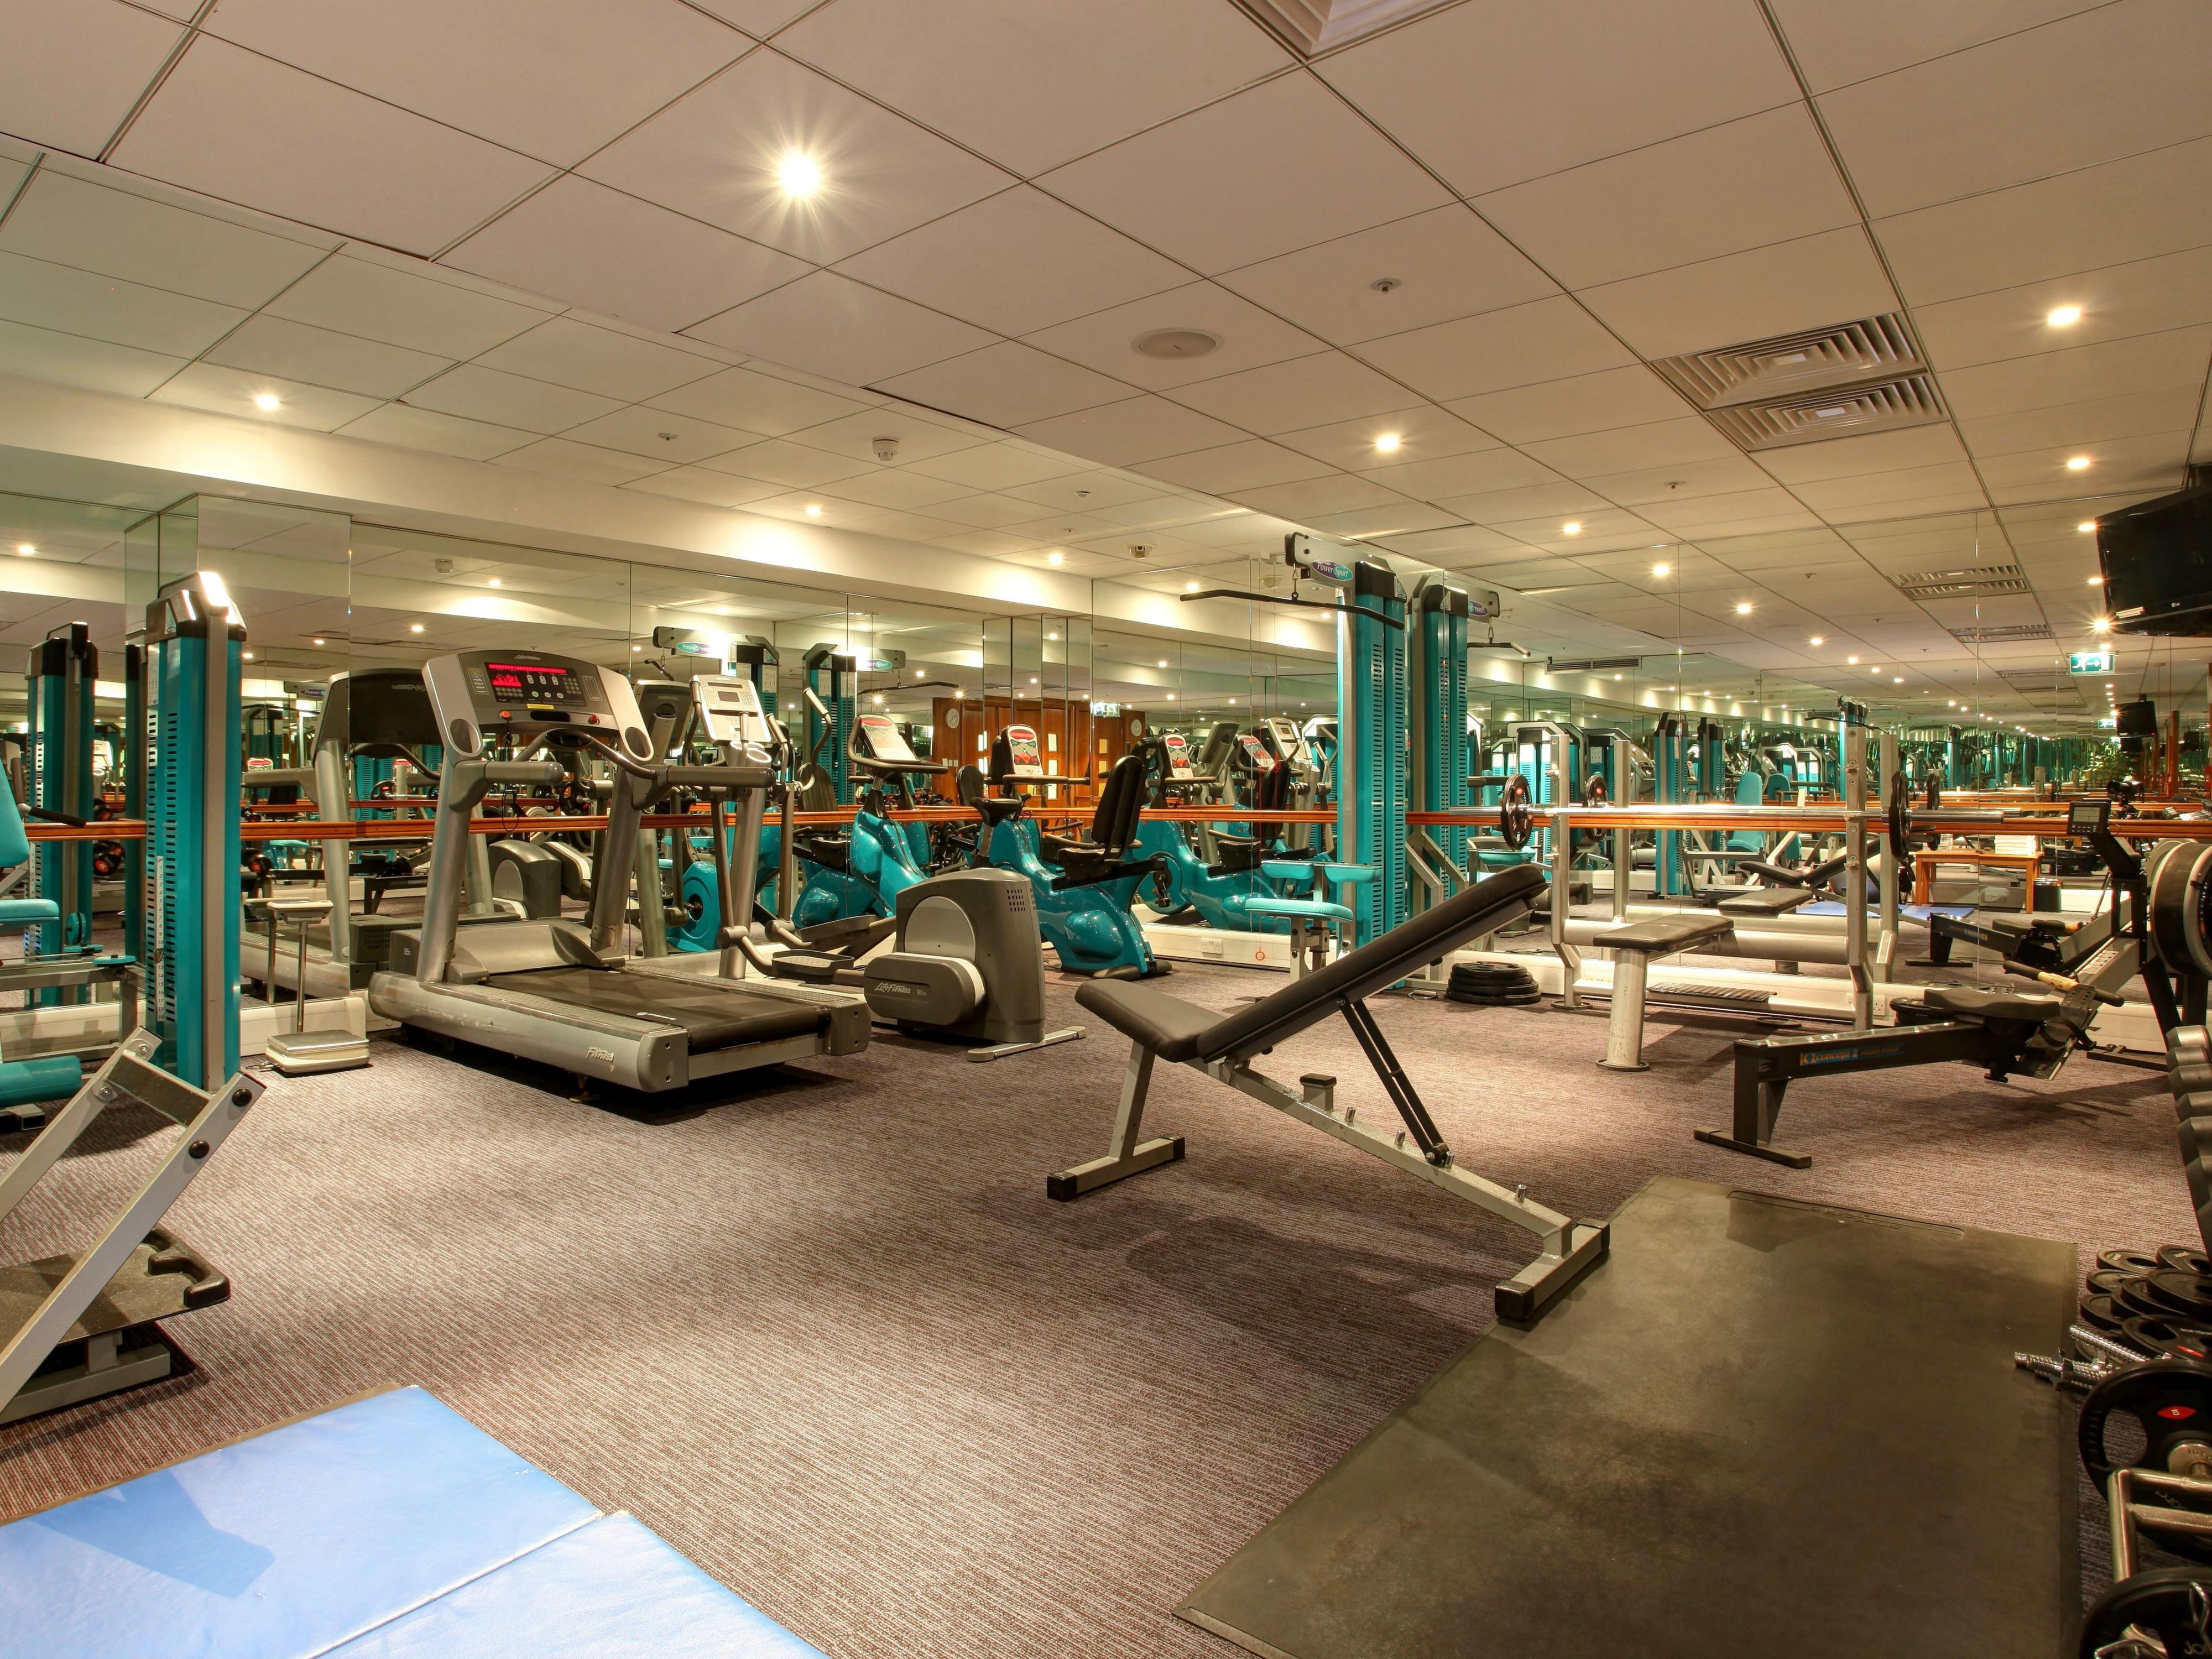 For the keep fit fanatics, we have the perfect spot